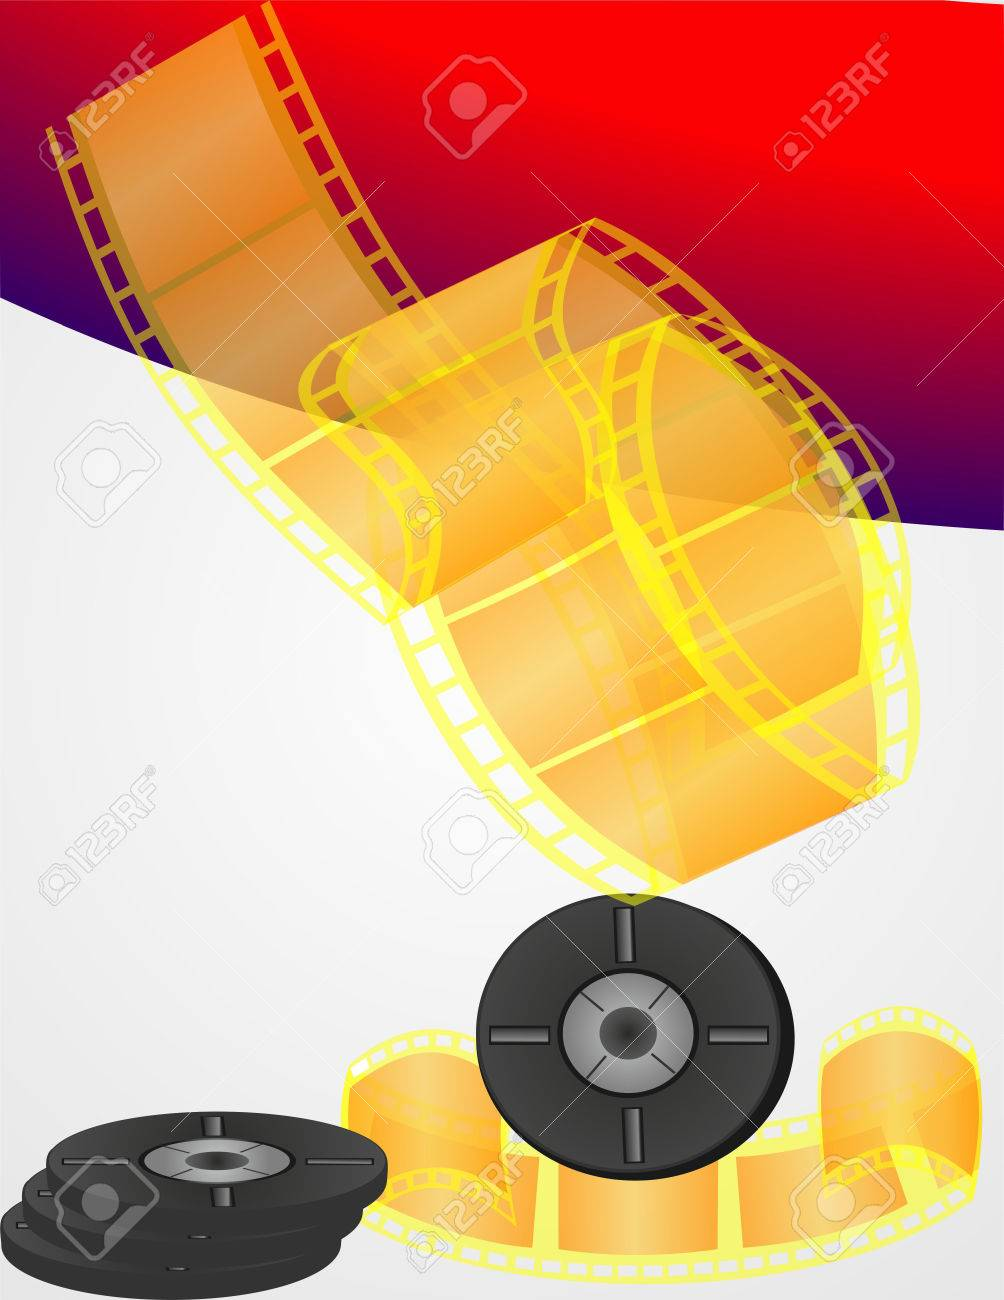 film strip roll set grunge at cinema cinema theme background royalty free cliparts vectors and stock illustration image 33925412 film strip roll set grunge at cinema cinema theme background